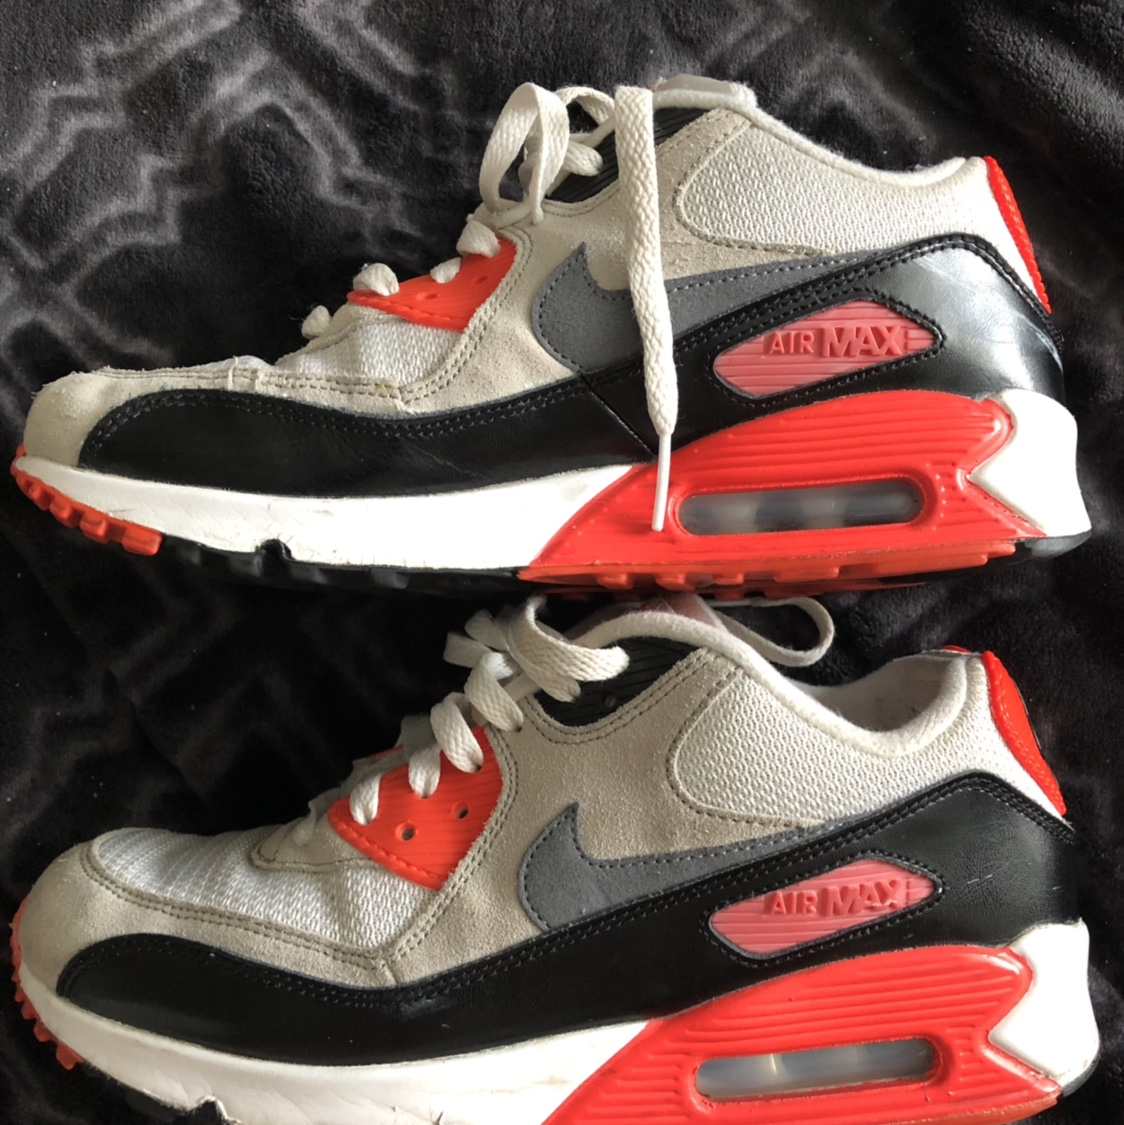 nuevo Nike Air Max 90 Infrared 2015 Size 6.5y,minor paint